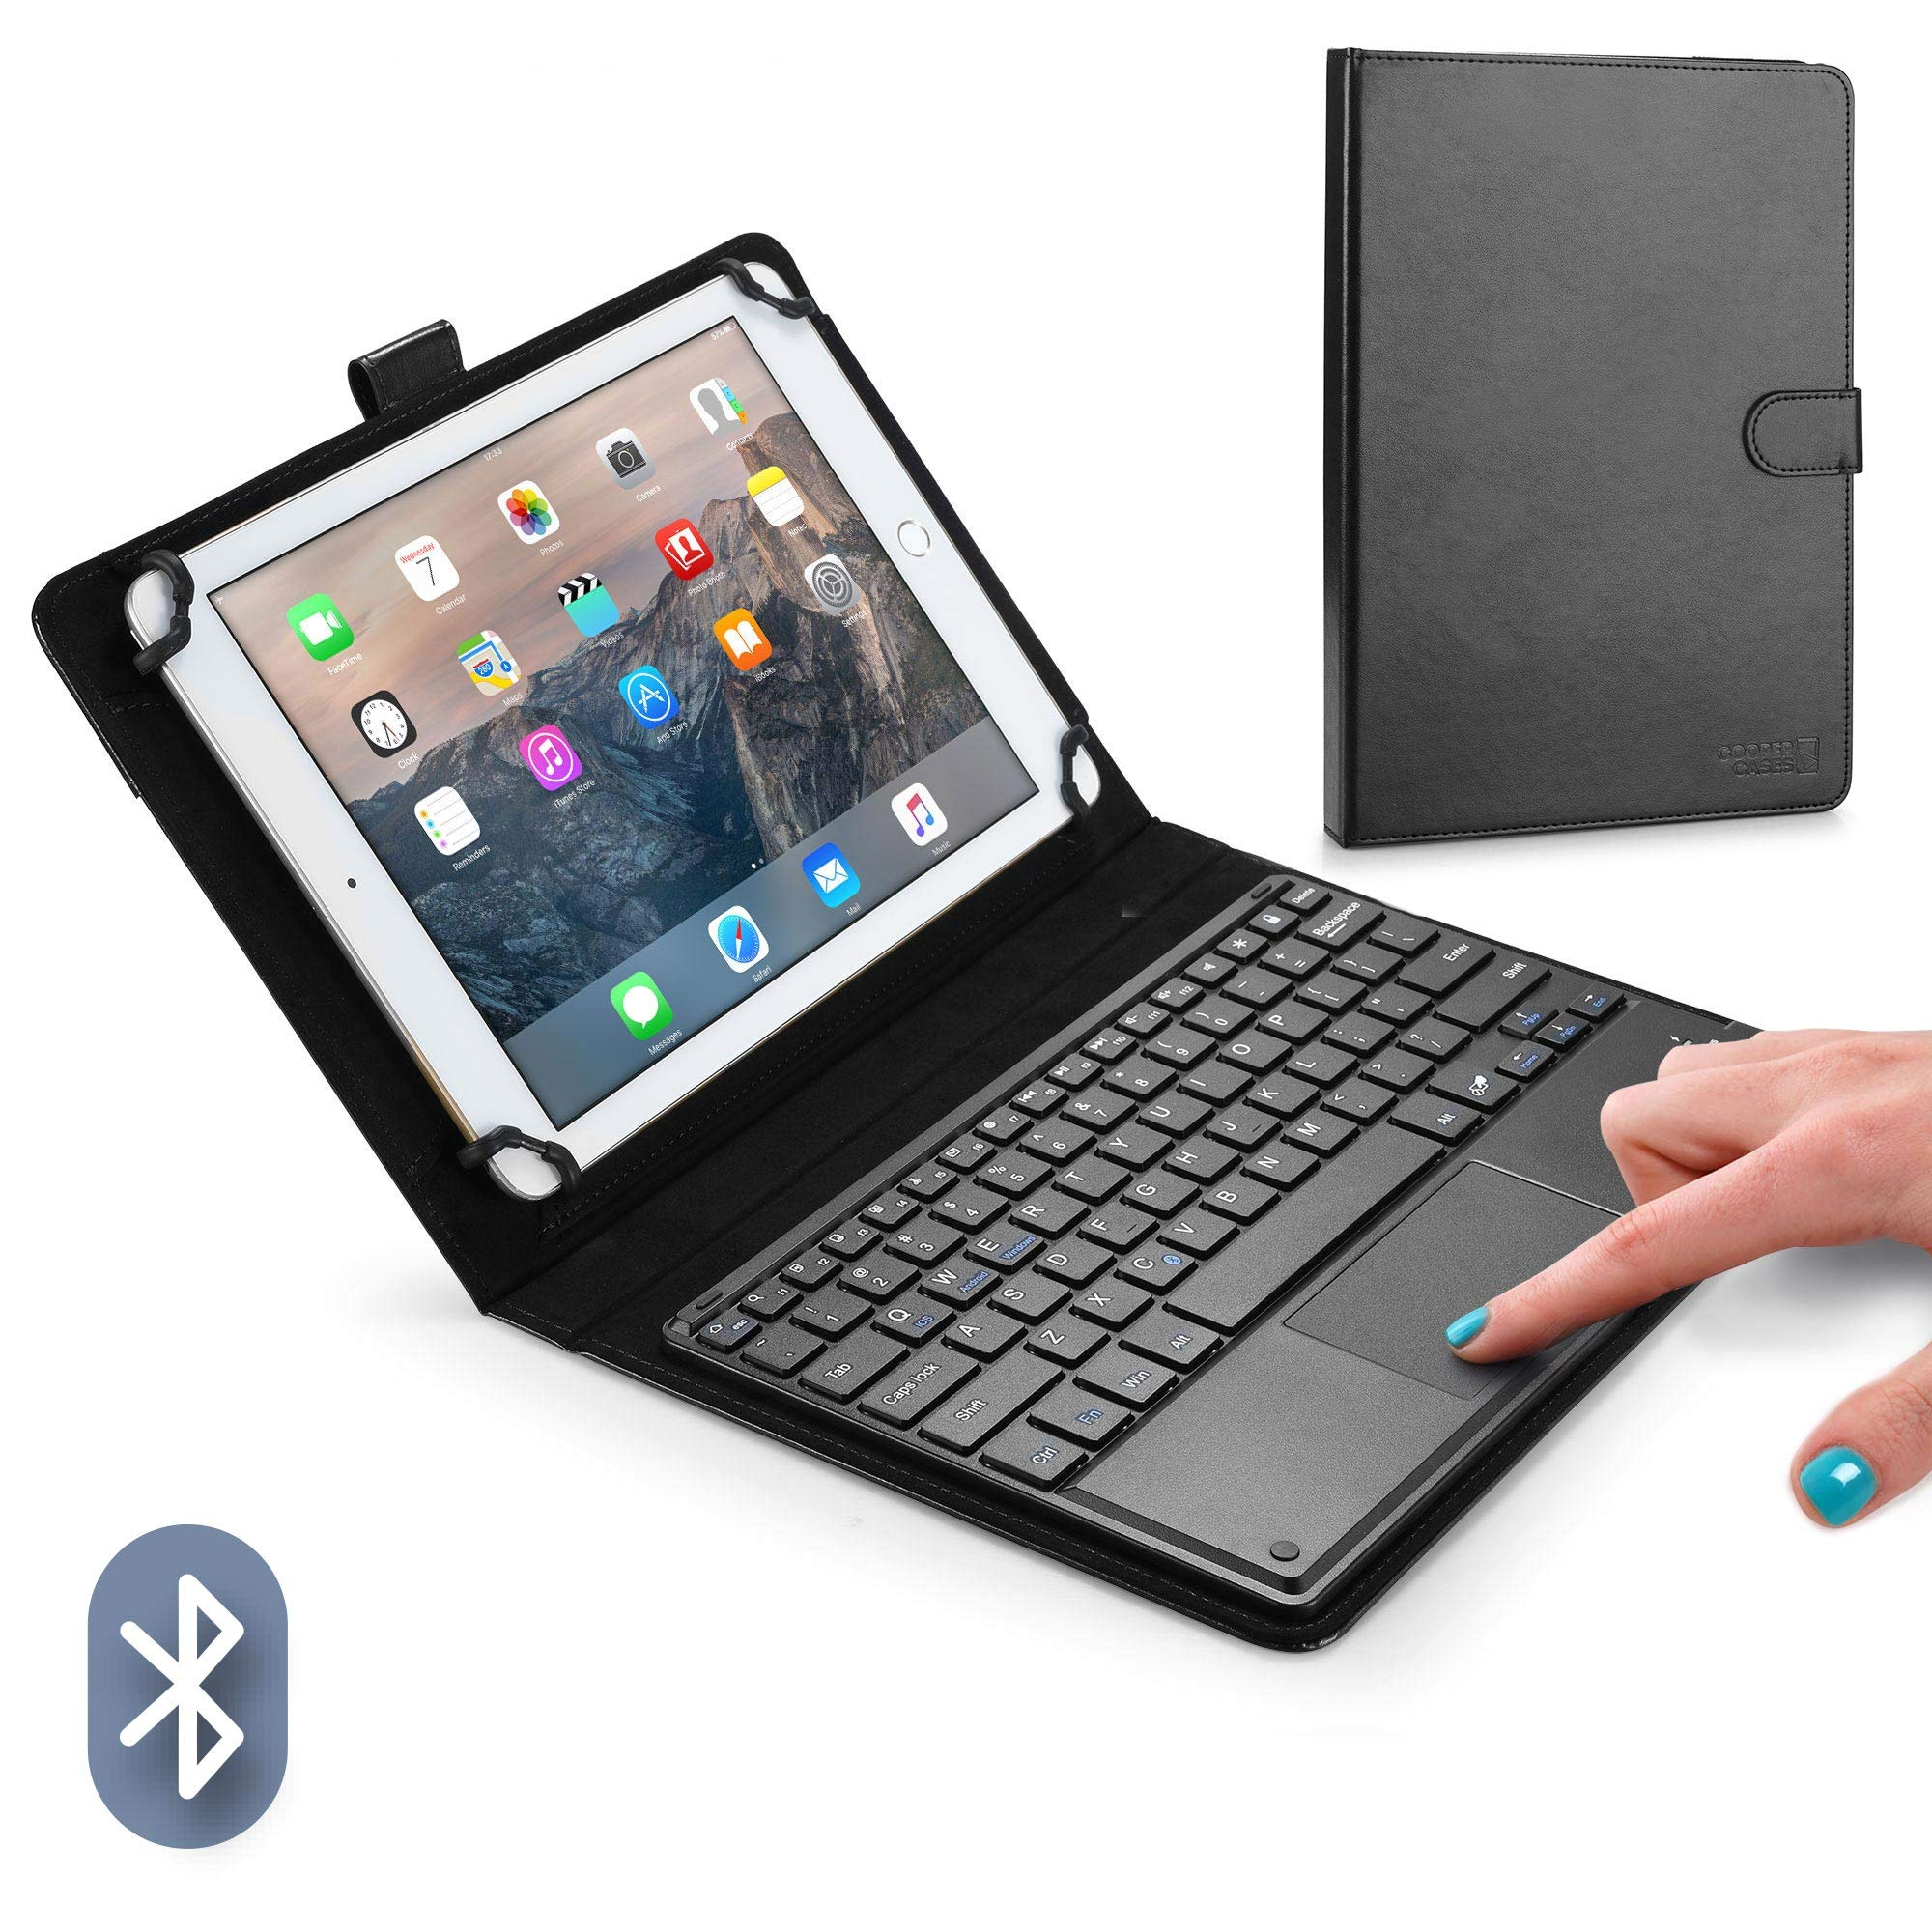 Cooper TOUCHPAD Executive Keyboard case Compatible with Samsung Galaxy Tab 10.1 3G | 2-in-1 Bluetooth Wireless Keyboard with Touchpad & Leather Folio Cover | Touchpad Mouse (Black)